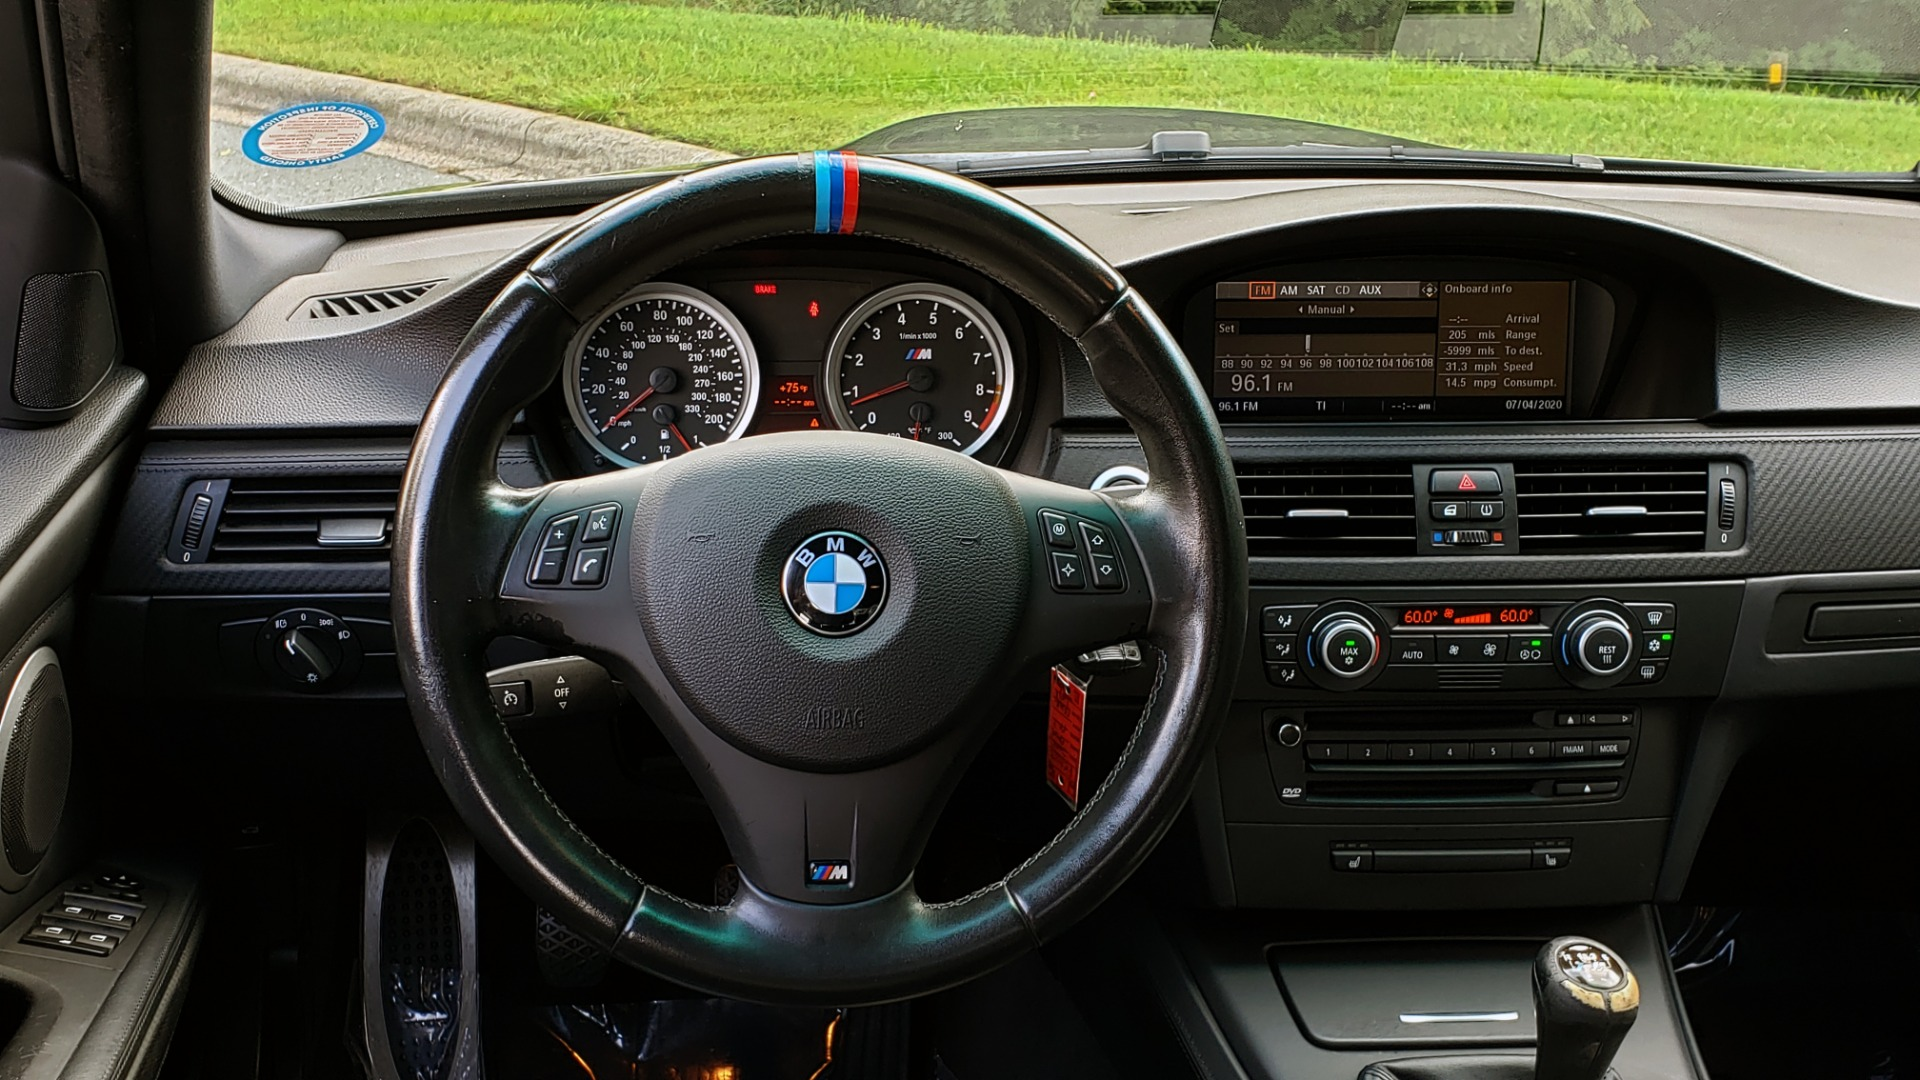 Used 2008 BMW 3 SERIES M3 PREMIUM / TECH / PDC / SUNROOF / 4.0L V8 / 6-SPD MANUAL for sale Sold at Formula Imports in Charlotte NC 28227 43